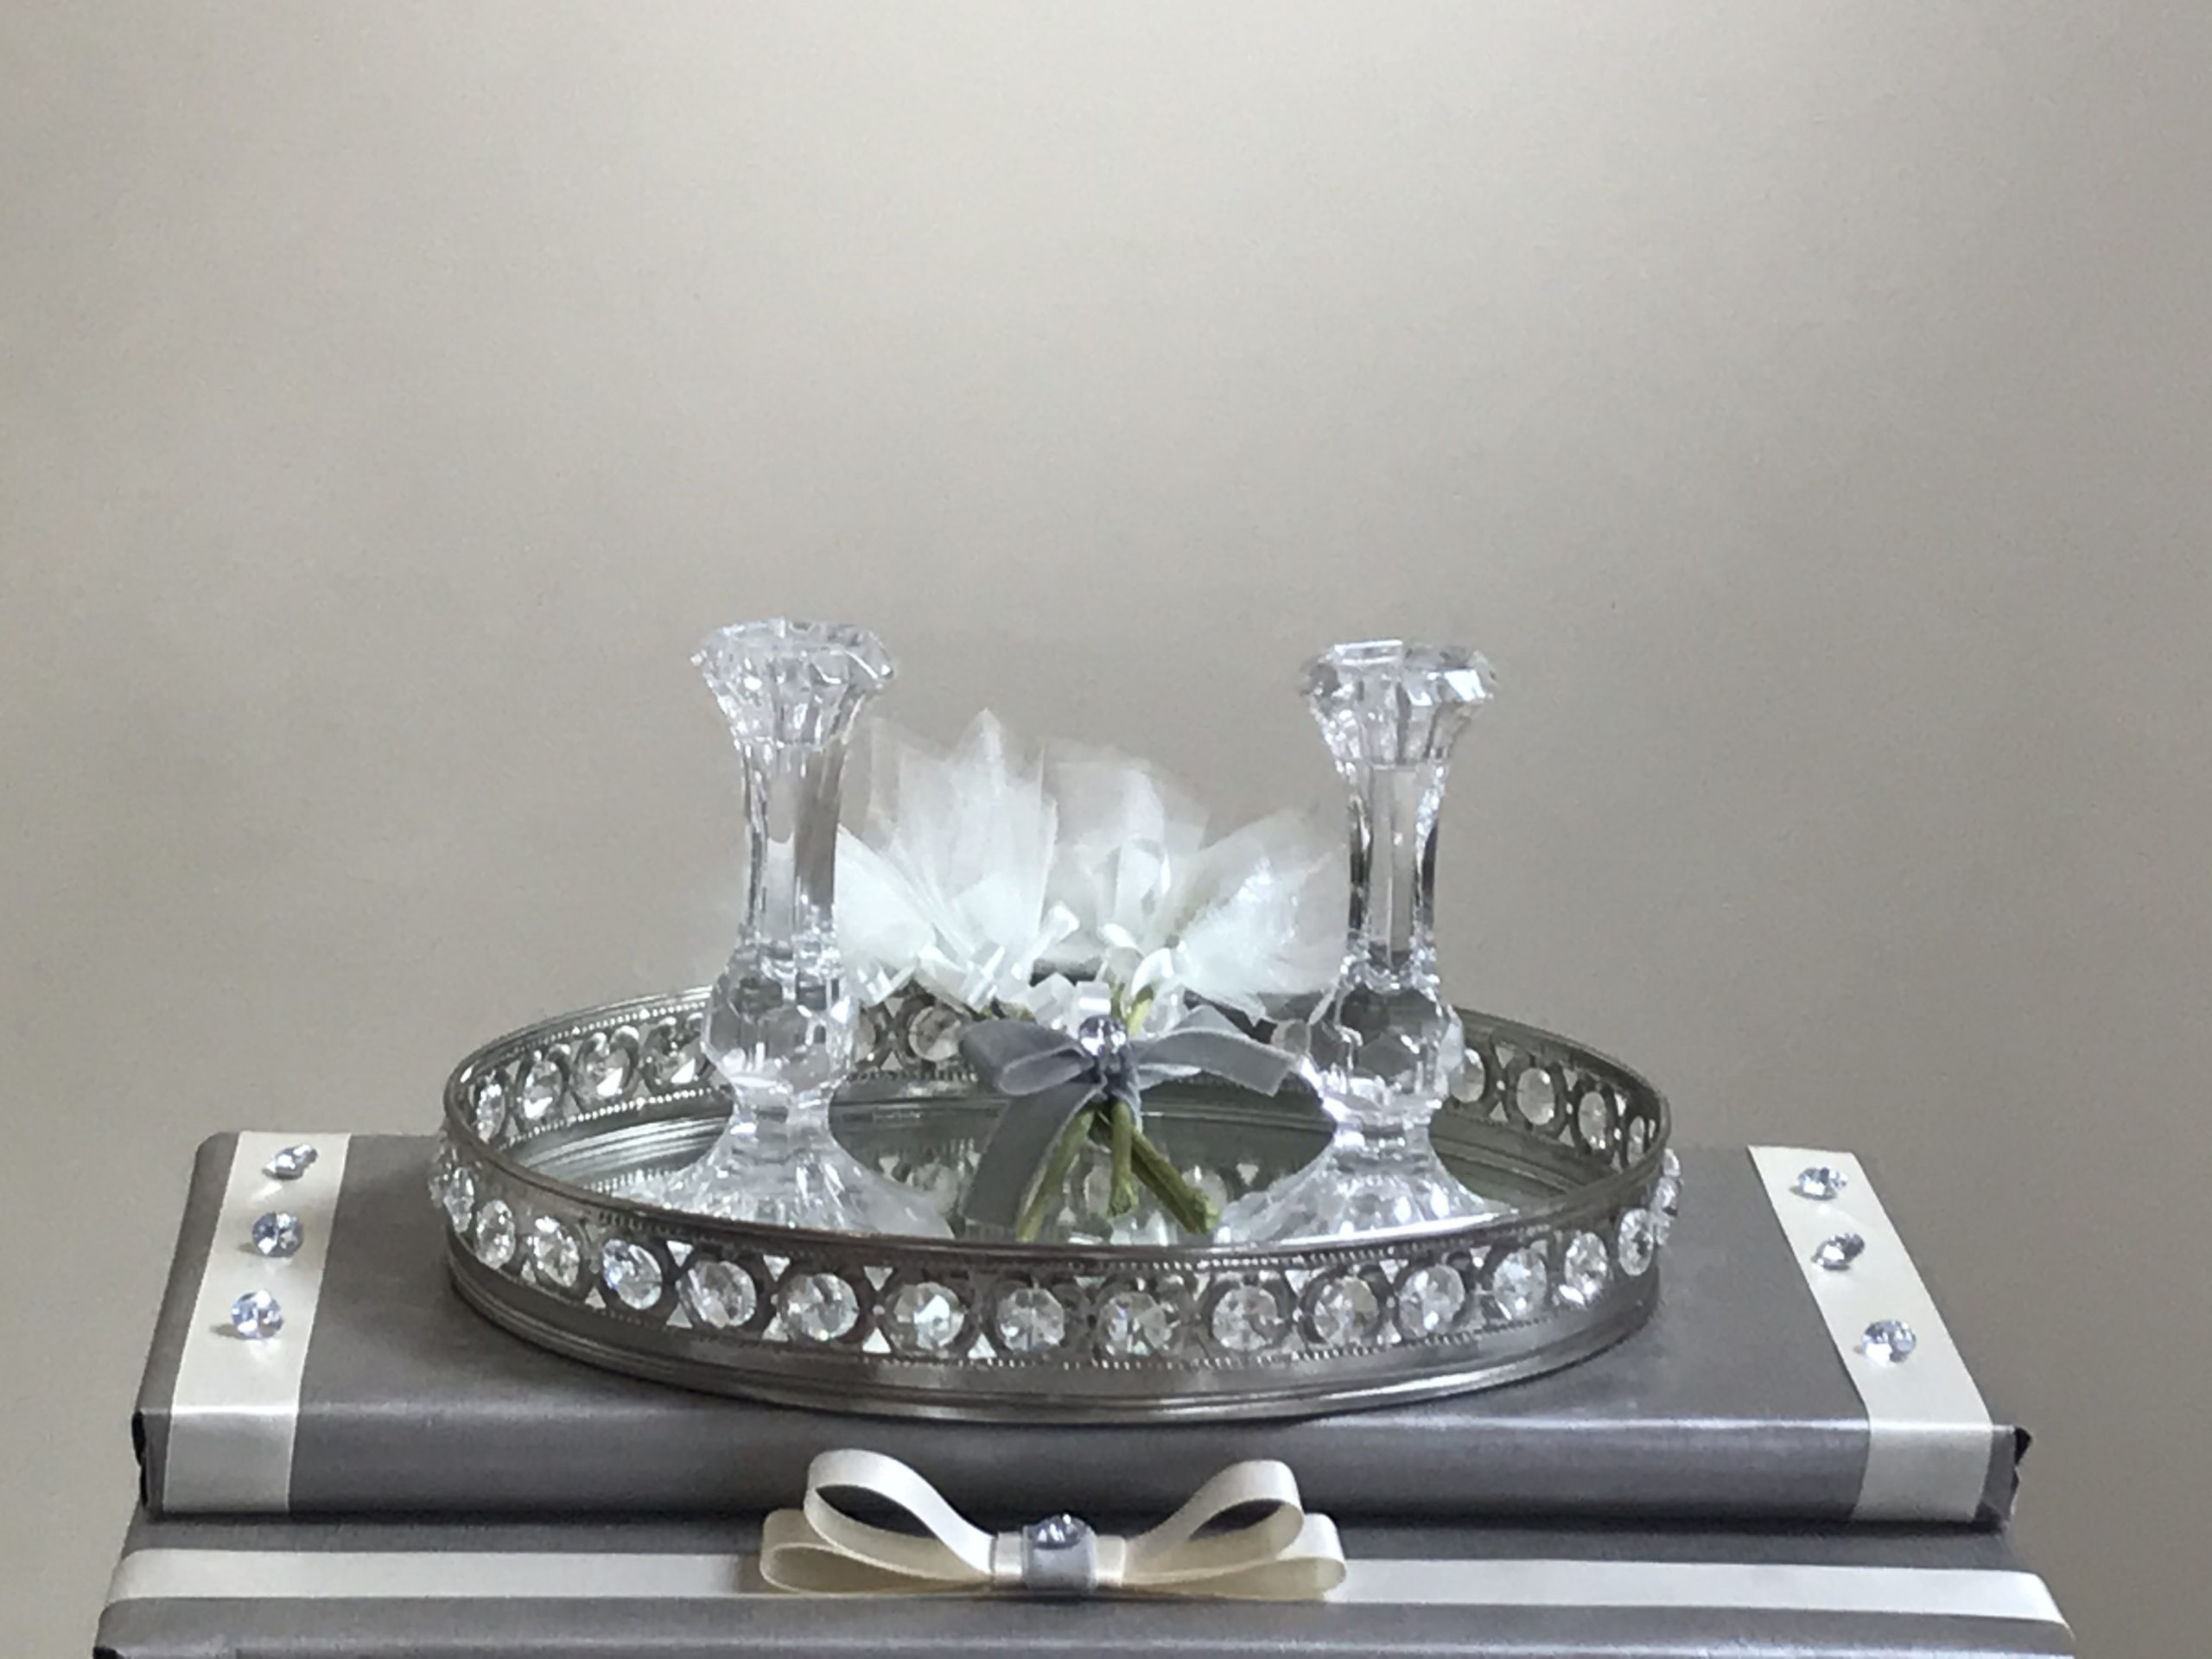 Candlestick & Tray gift